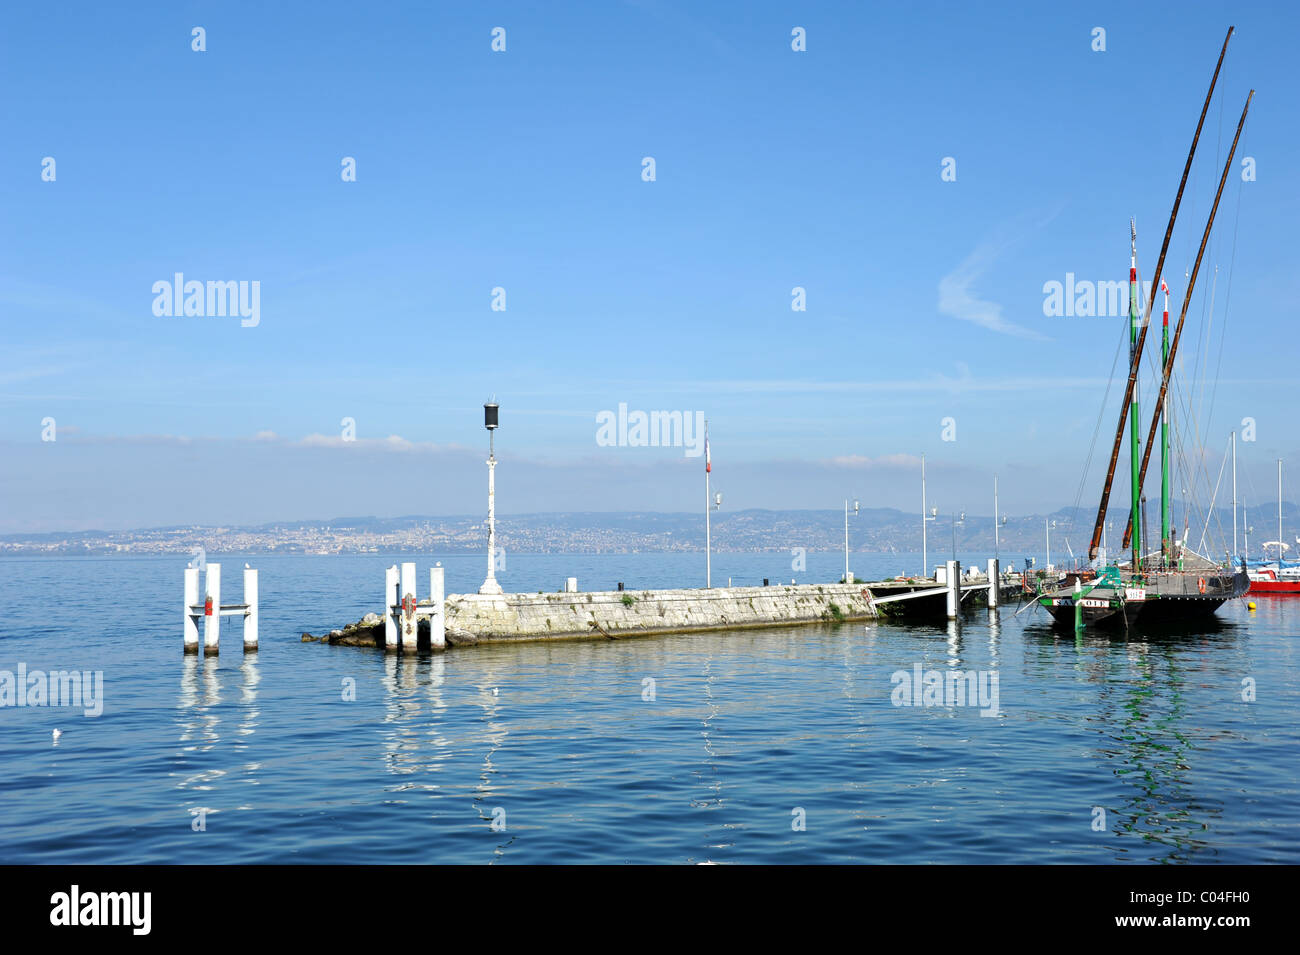 Lake Geneva at Evian-les-Bains, France Stock Photo